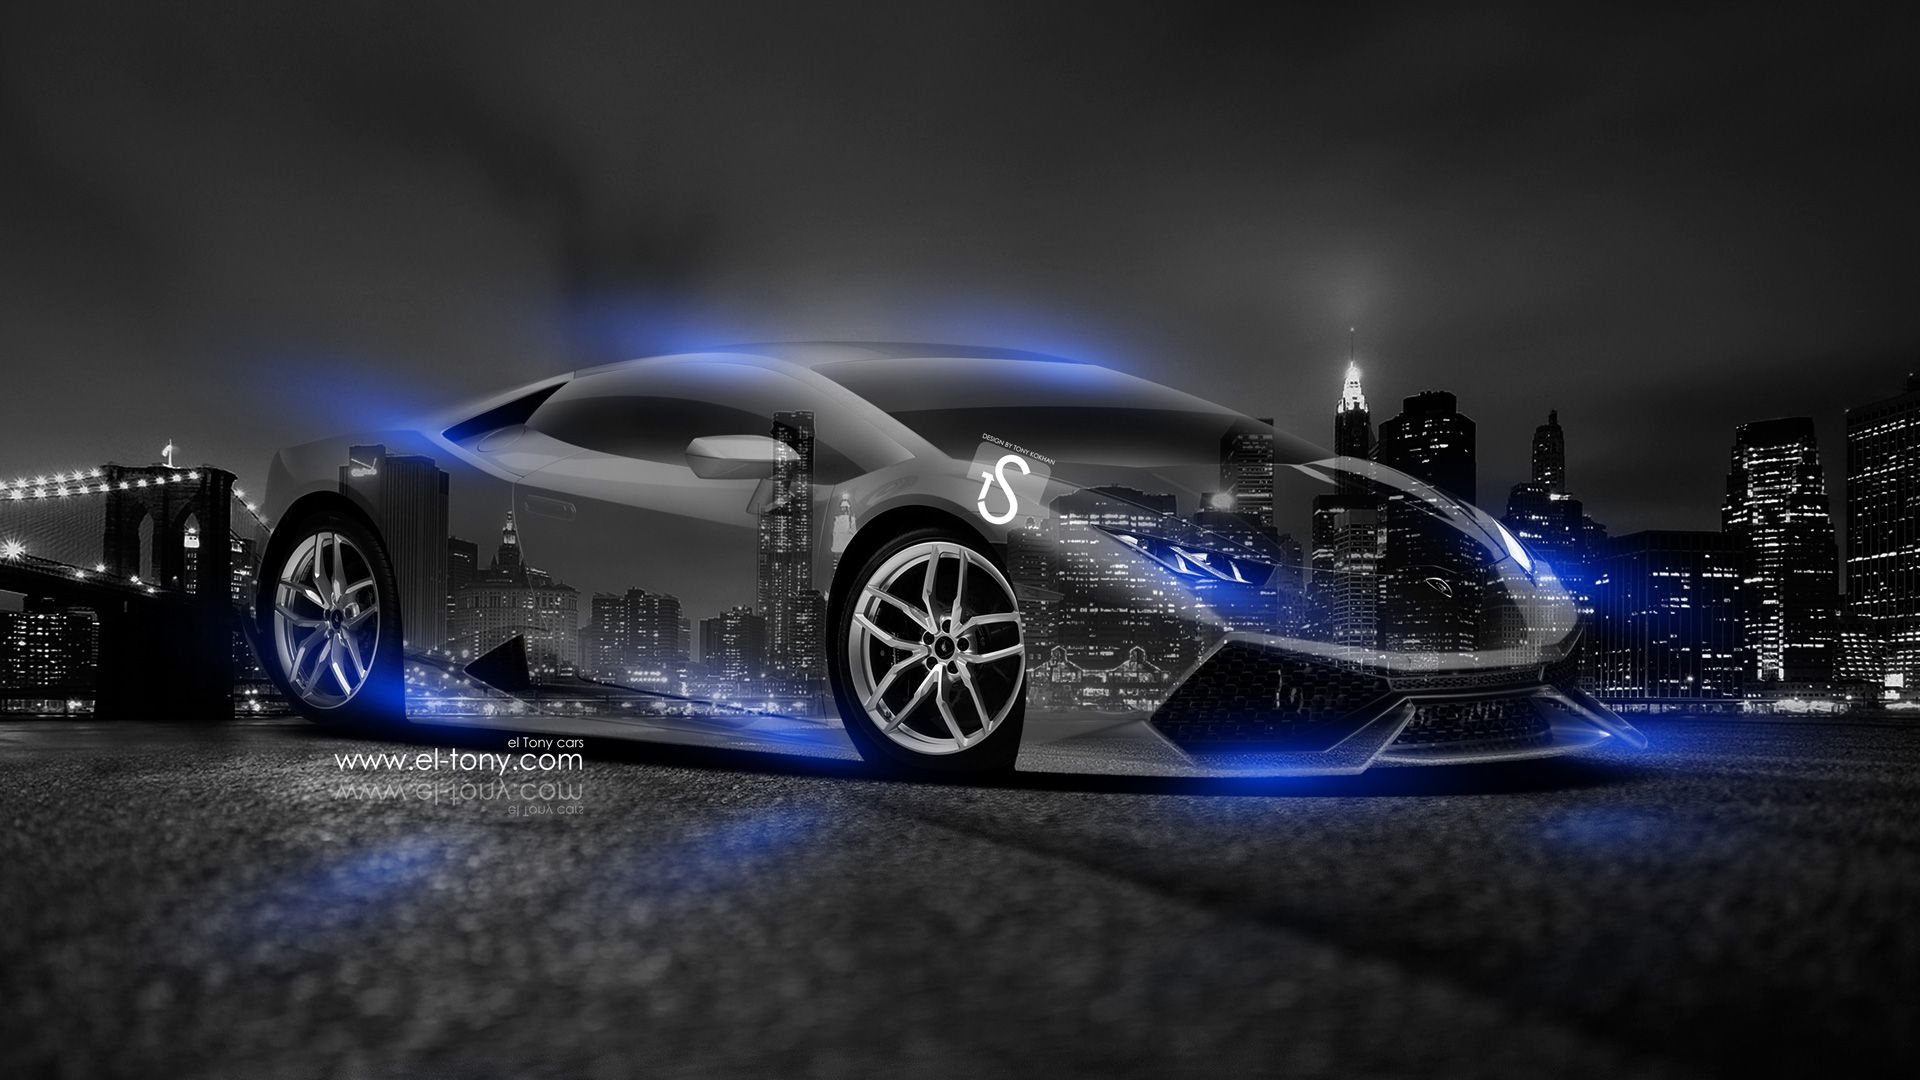 Ordinaire Black Lamborghini With Neon Blue Lights | Lamborghini Huracan Crystal City  Car